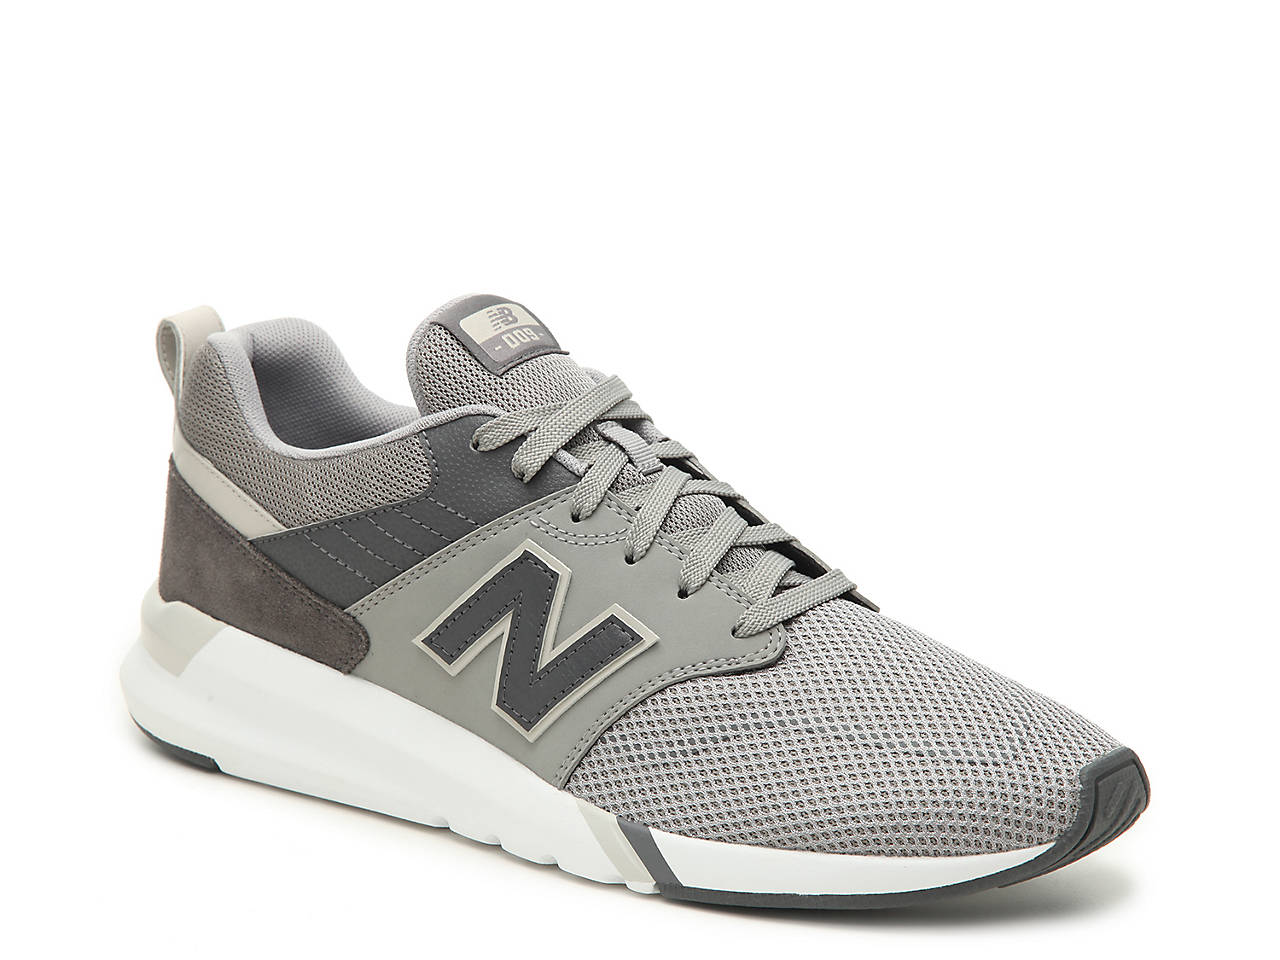 70b21b4199c New Balance 009 Sneaker - Men s Men s Shoes